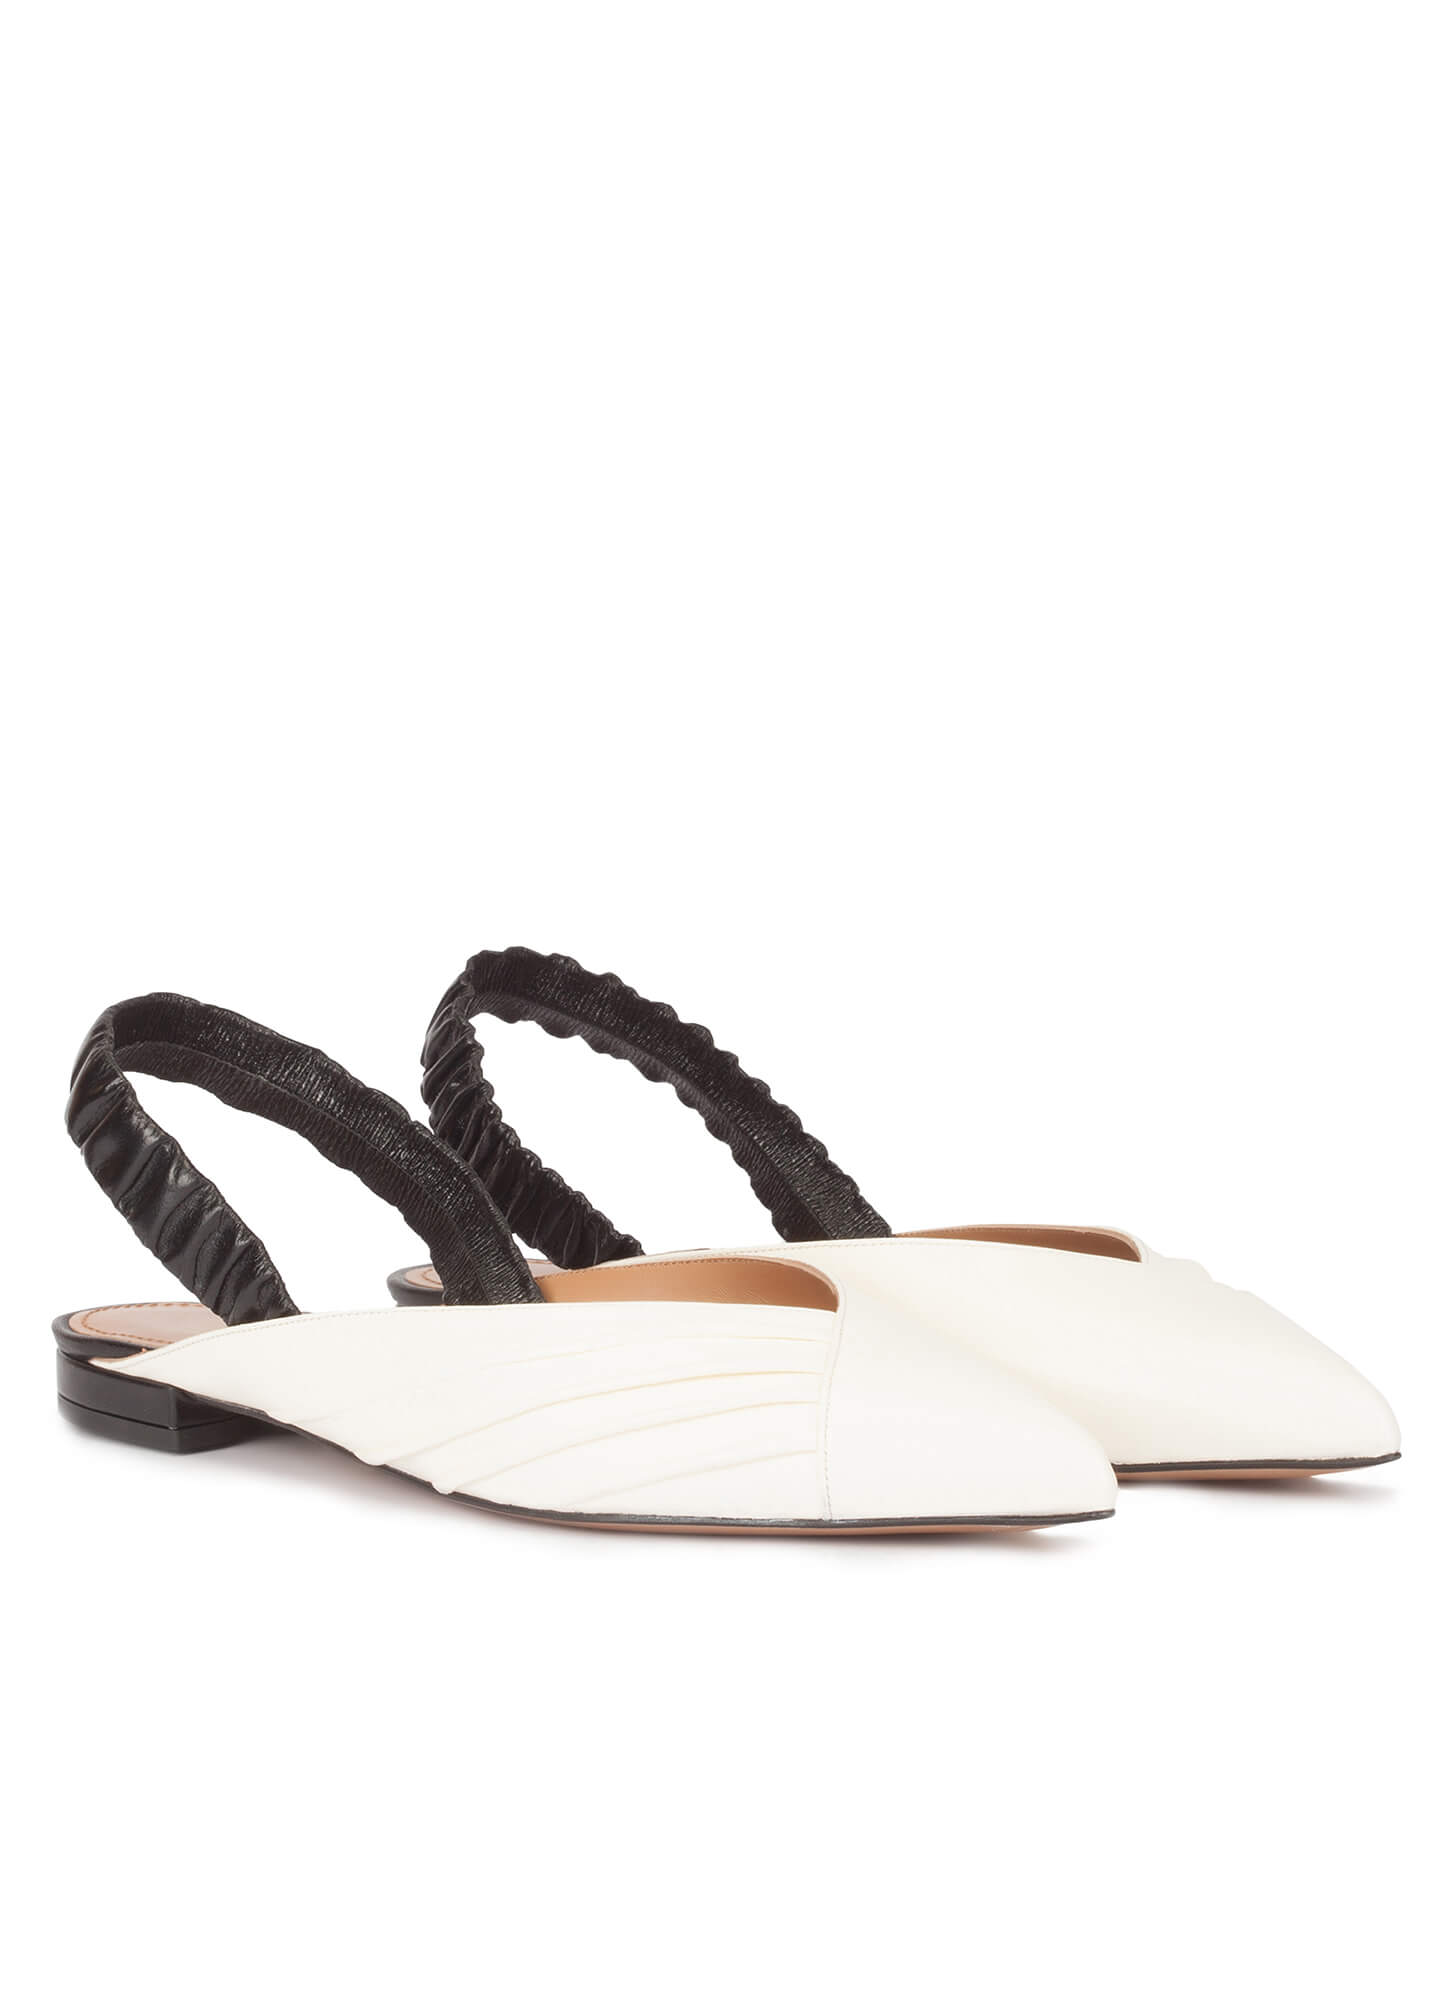 578d896fec7 Slingback point-toe flats in white and black leather . PURA LOPEZ